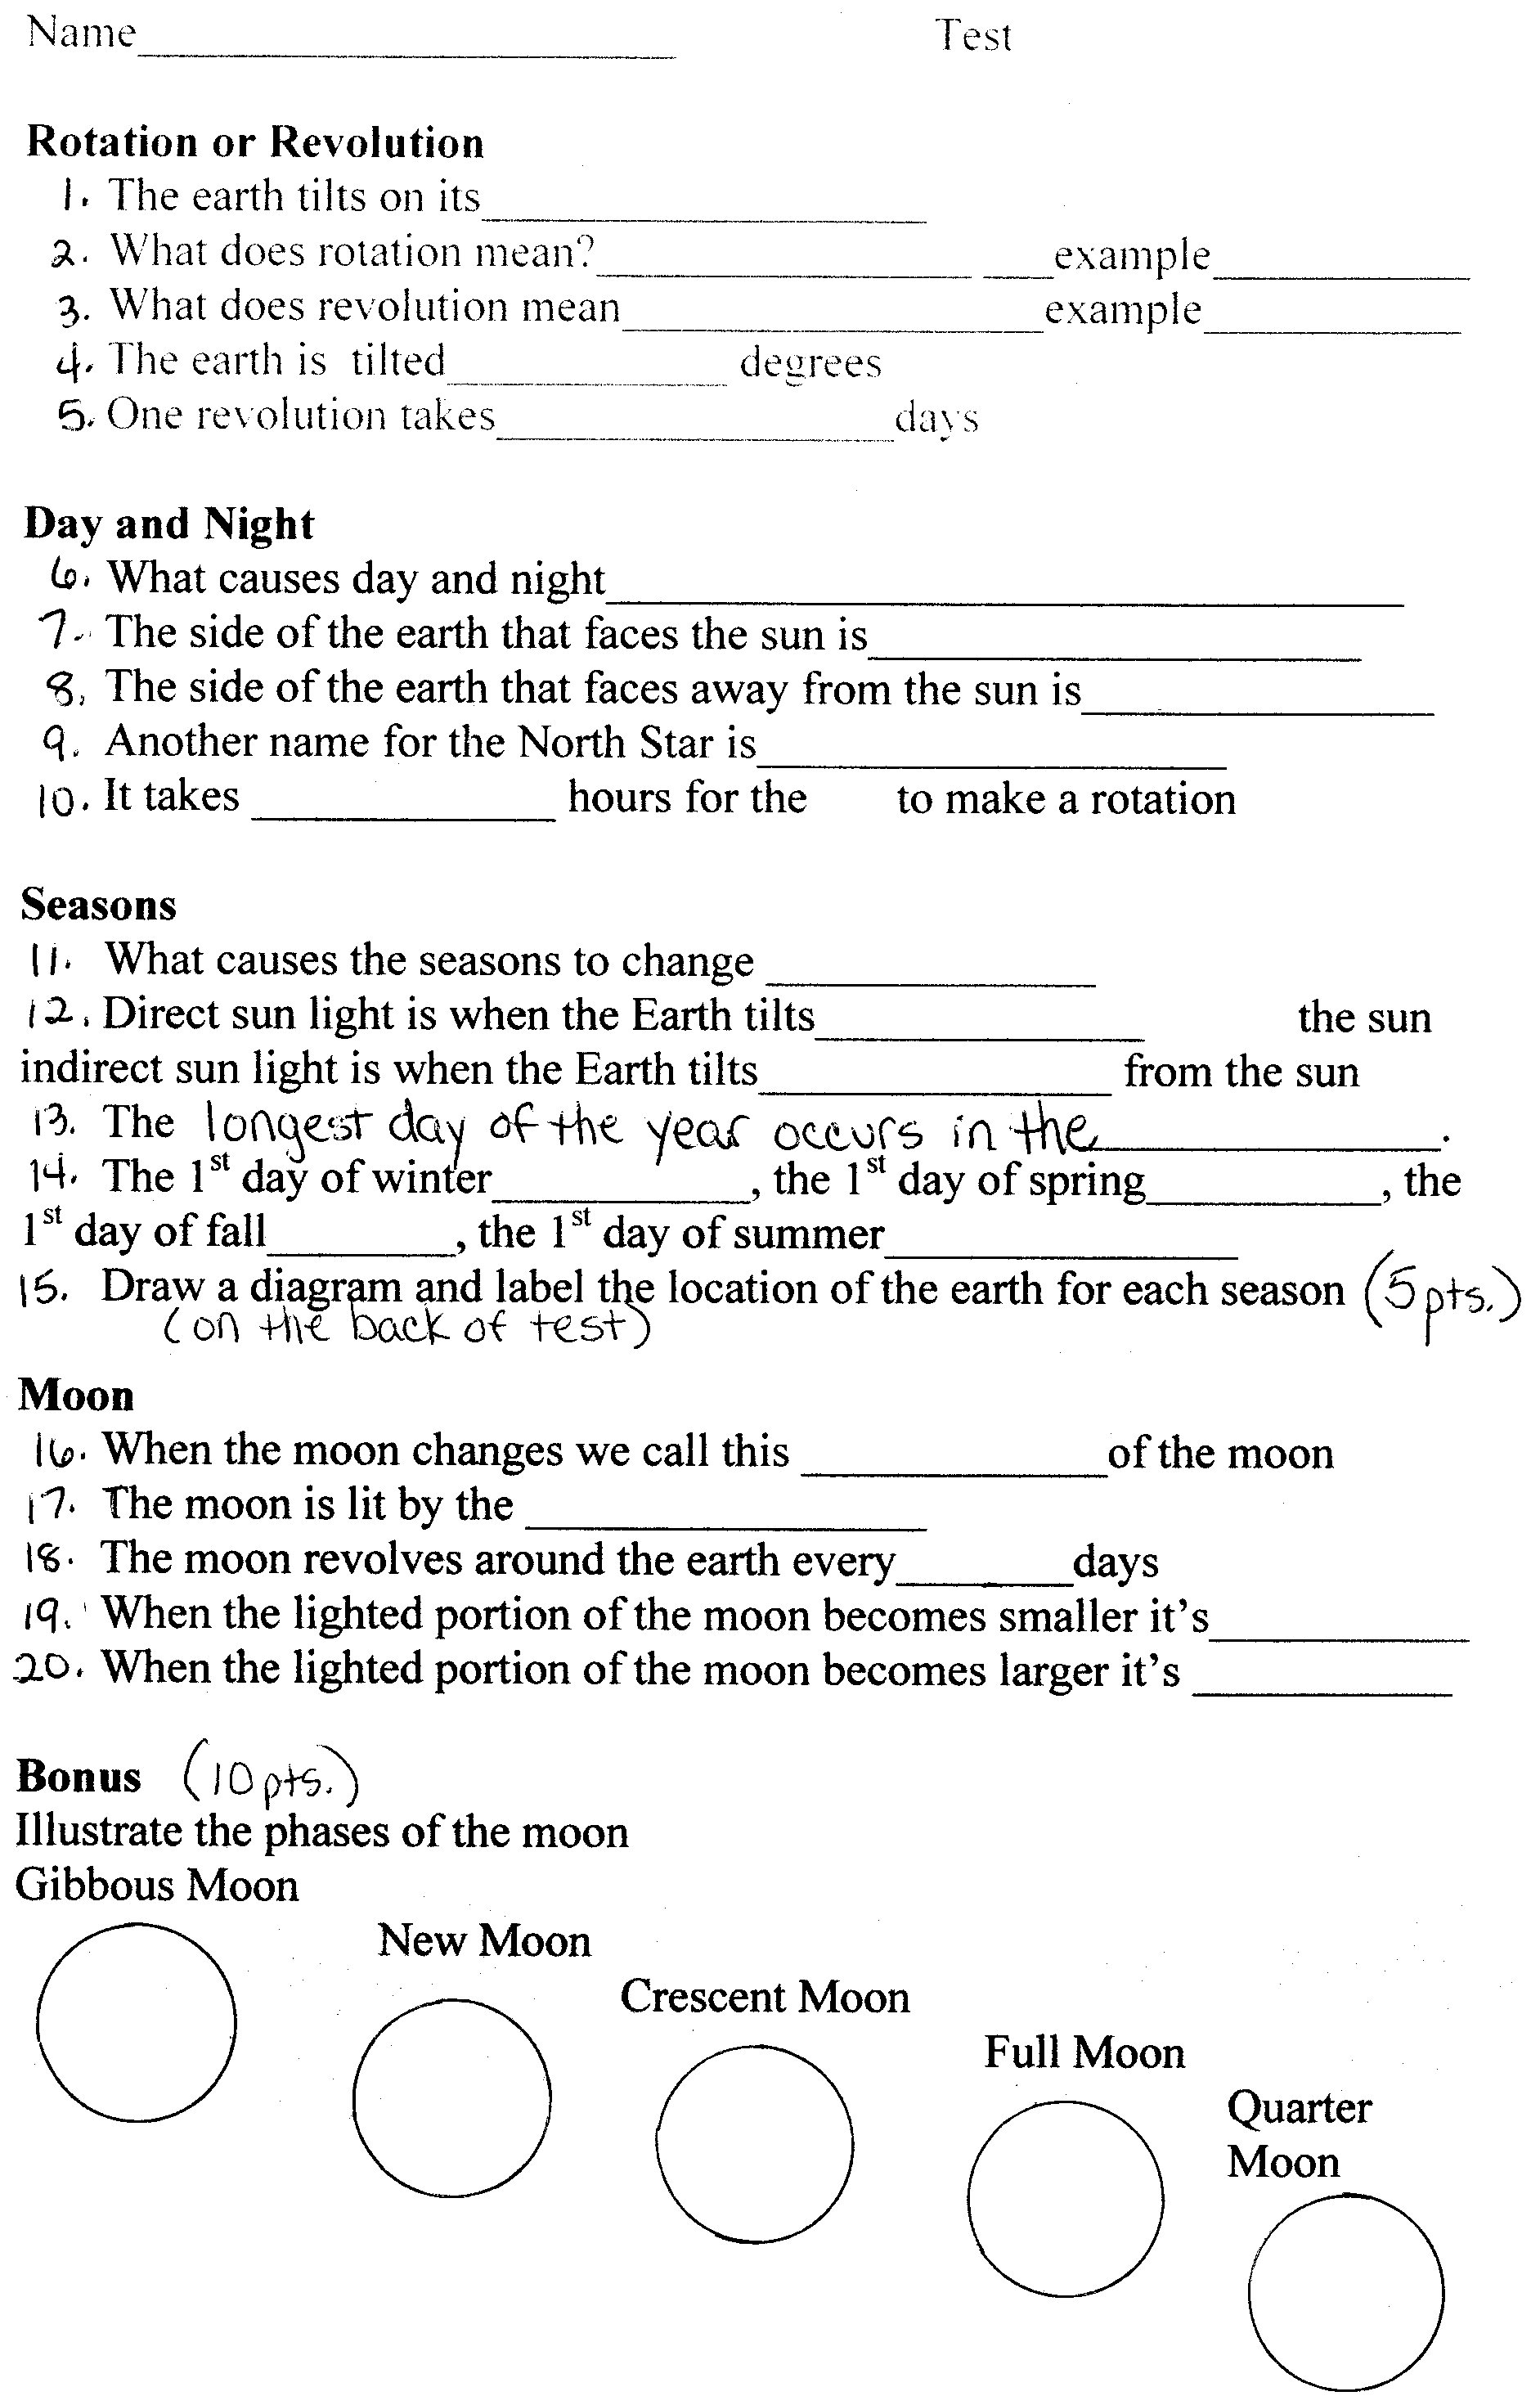 Free Worksheet High School Earth Science Worksheets earth science powerpoint astronomy exam